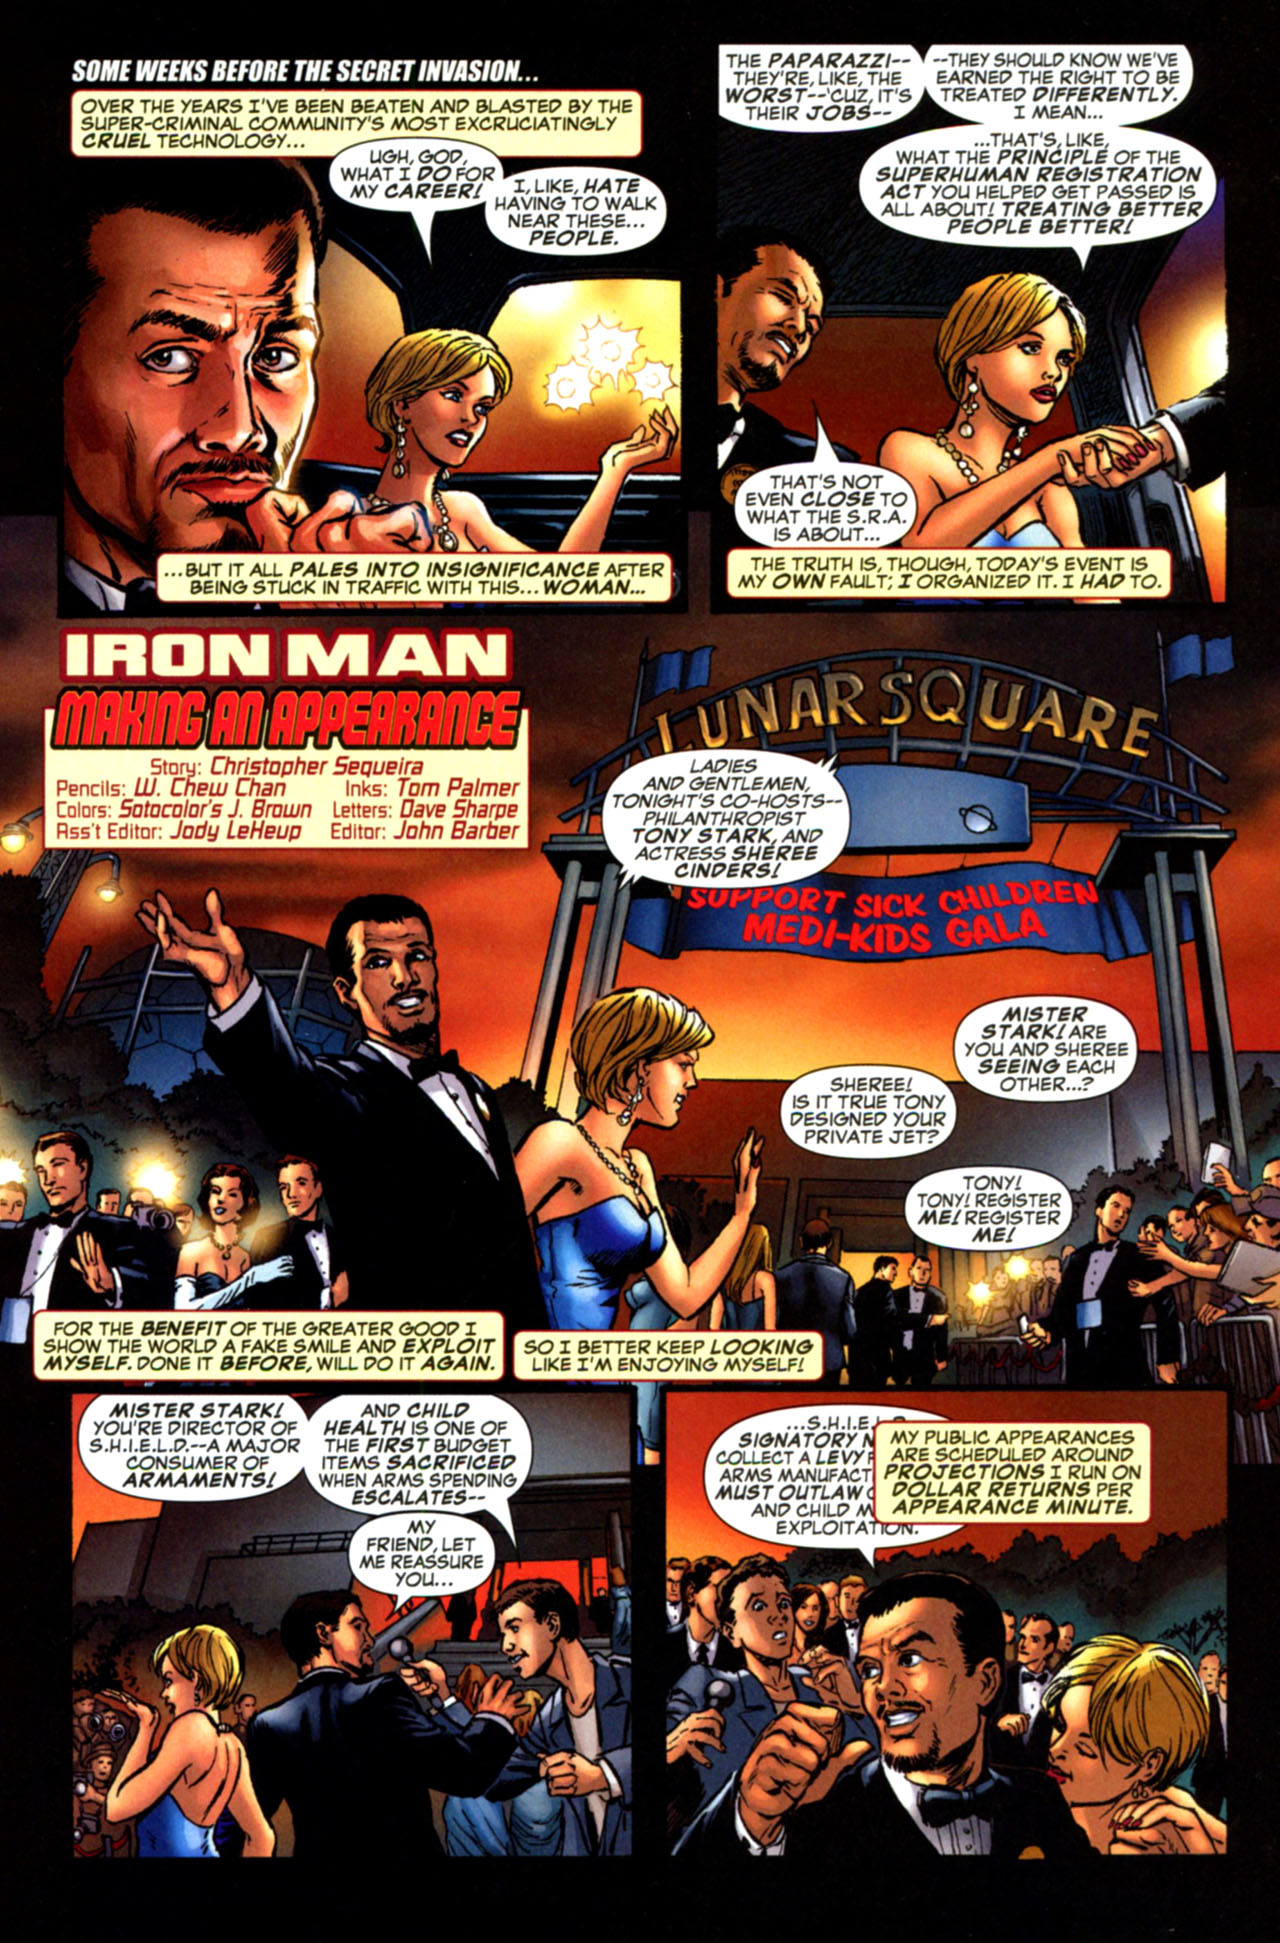 Astonishing Tales (2009) 1 Page 18